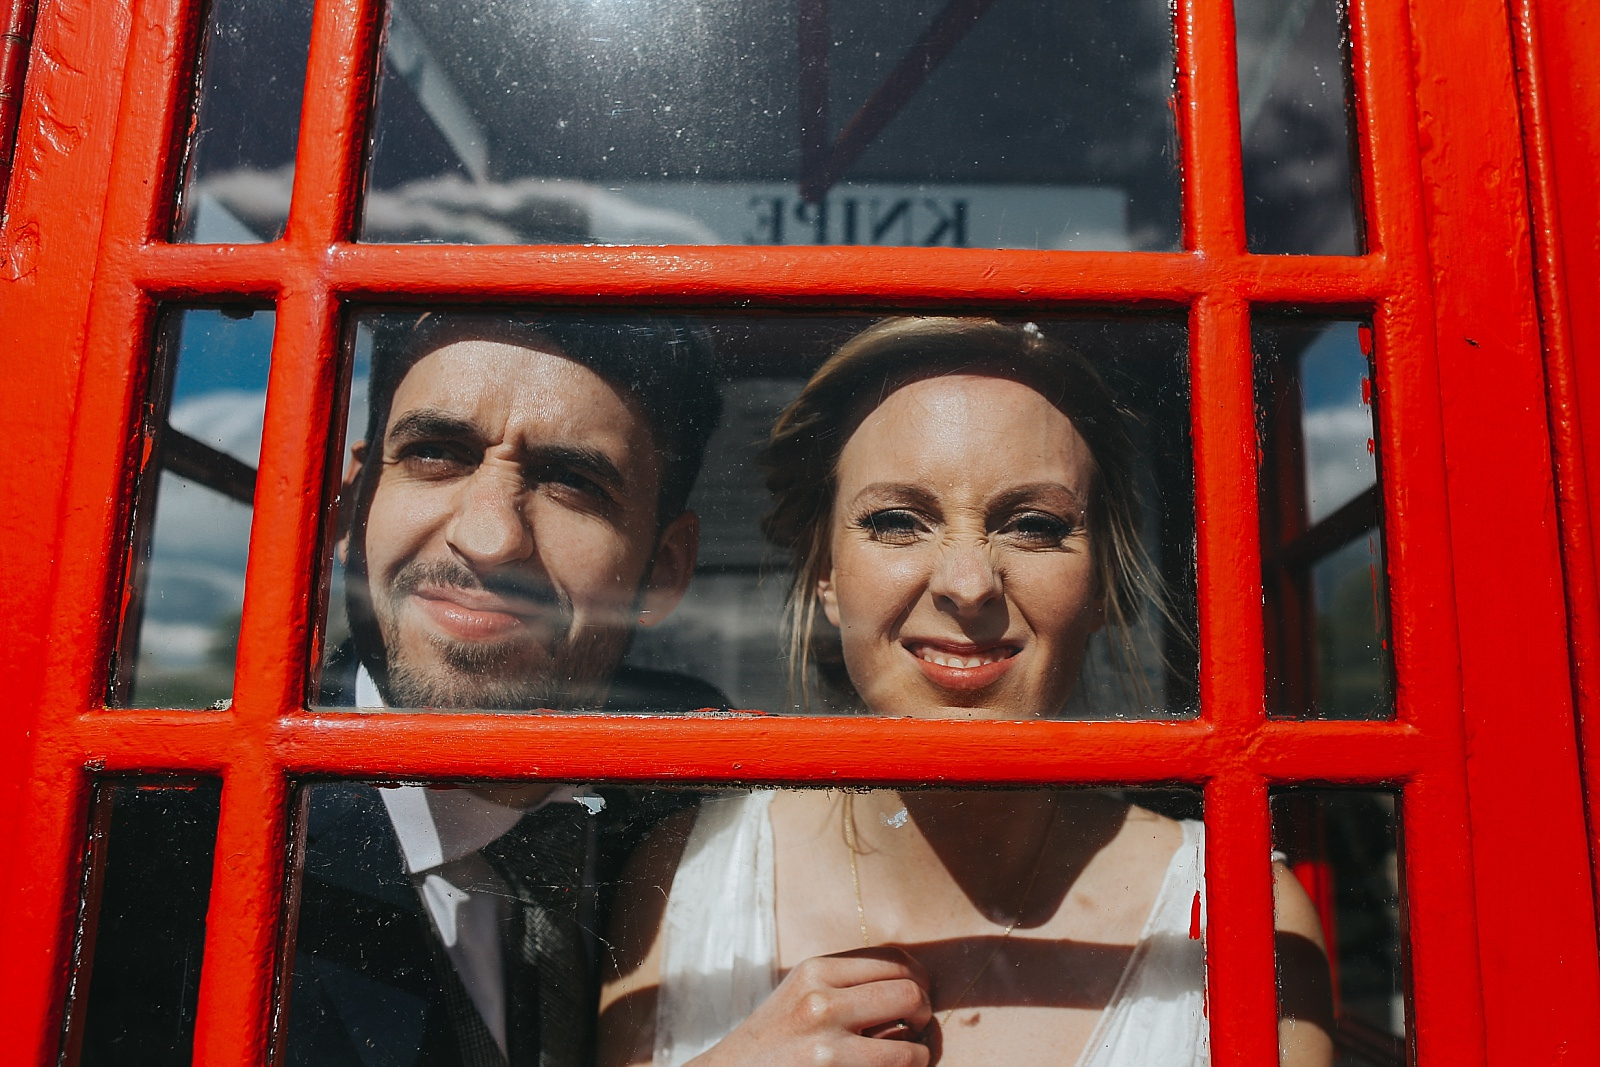 knipe hall fun phone box face pulling